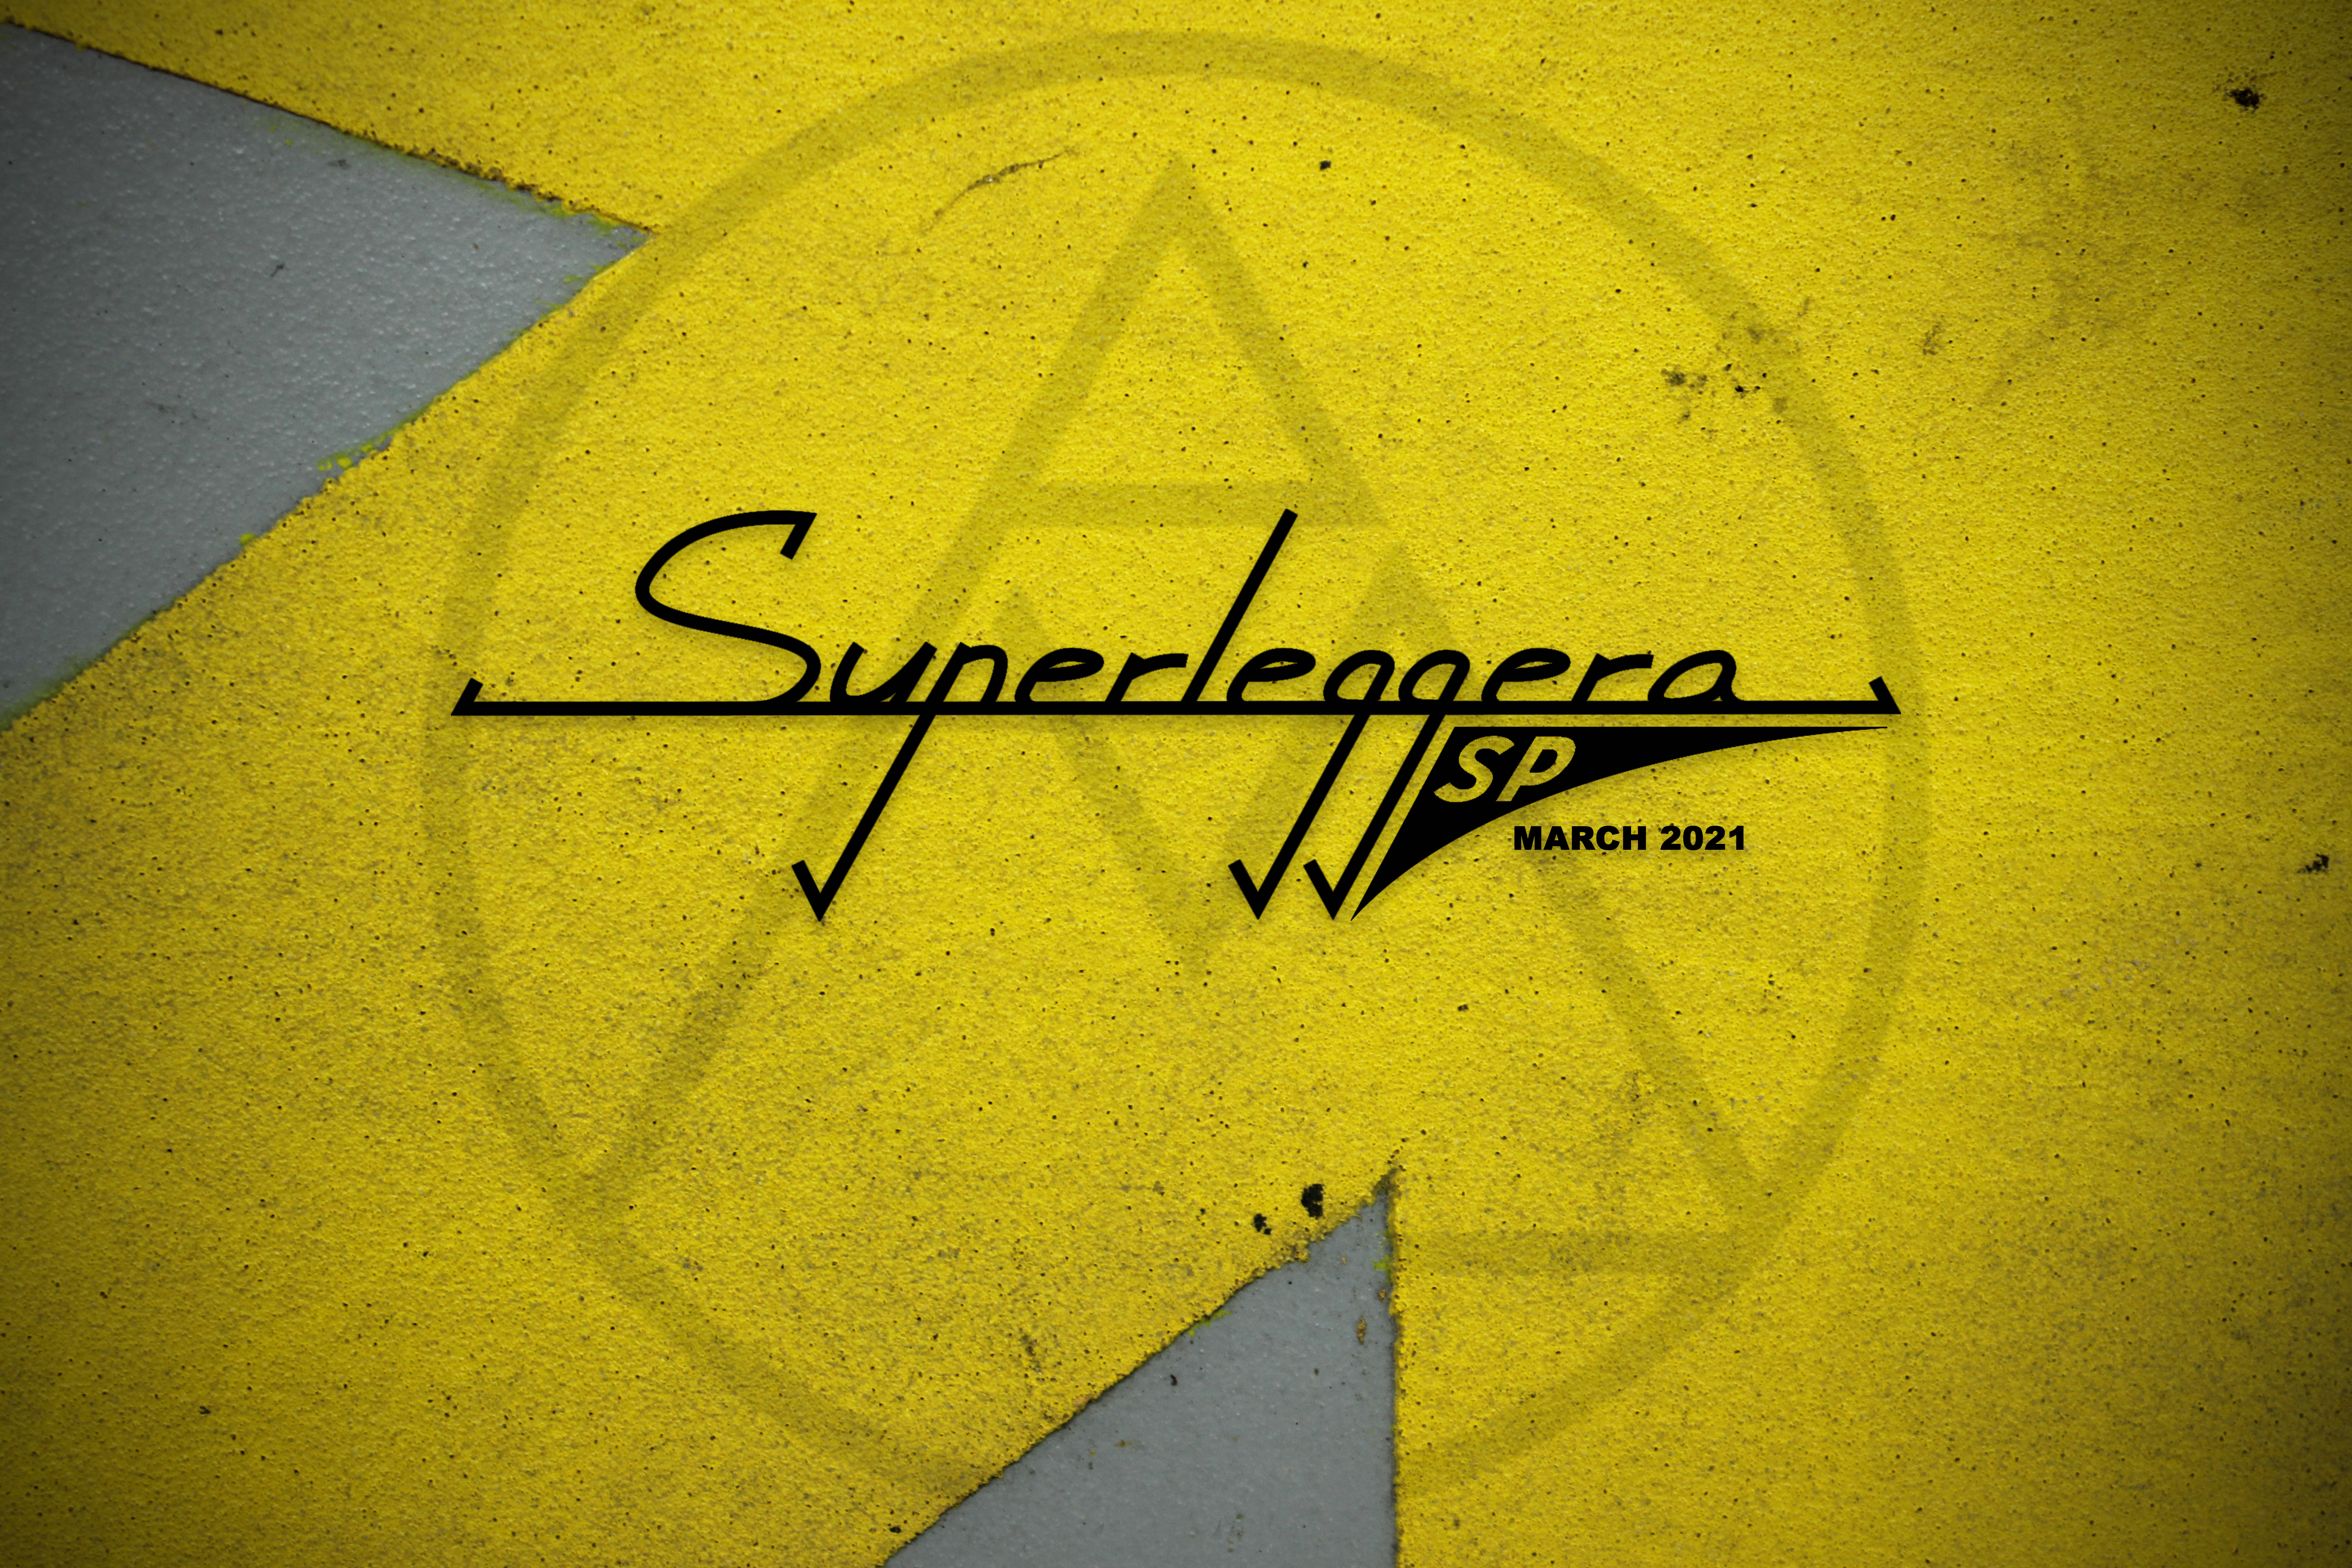 Superleggera SP teaser